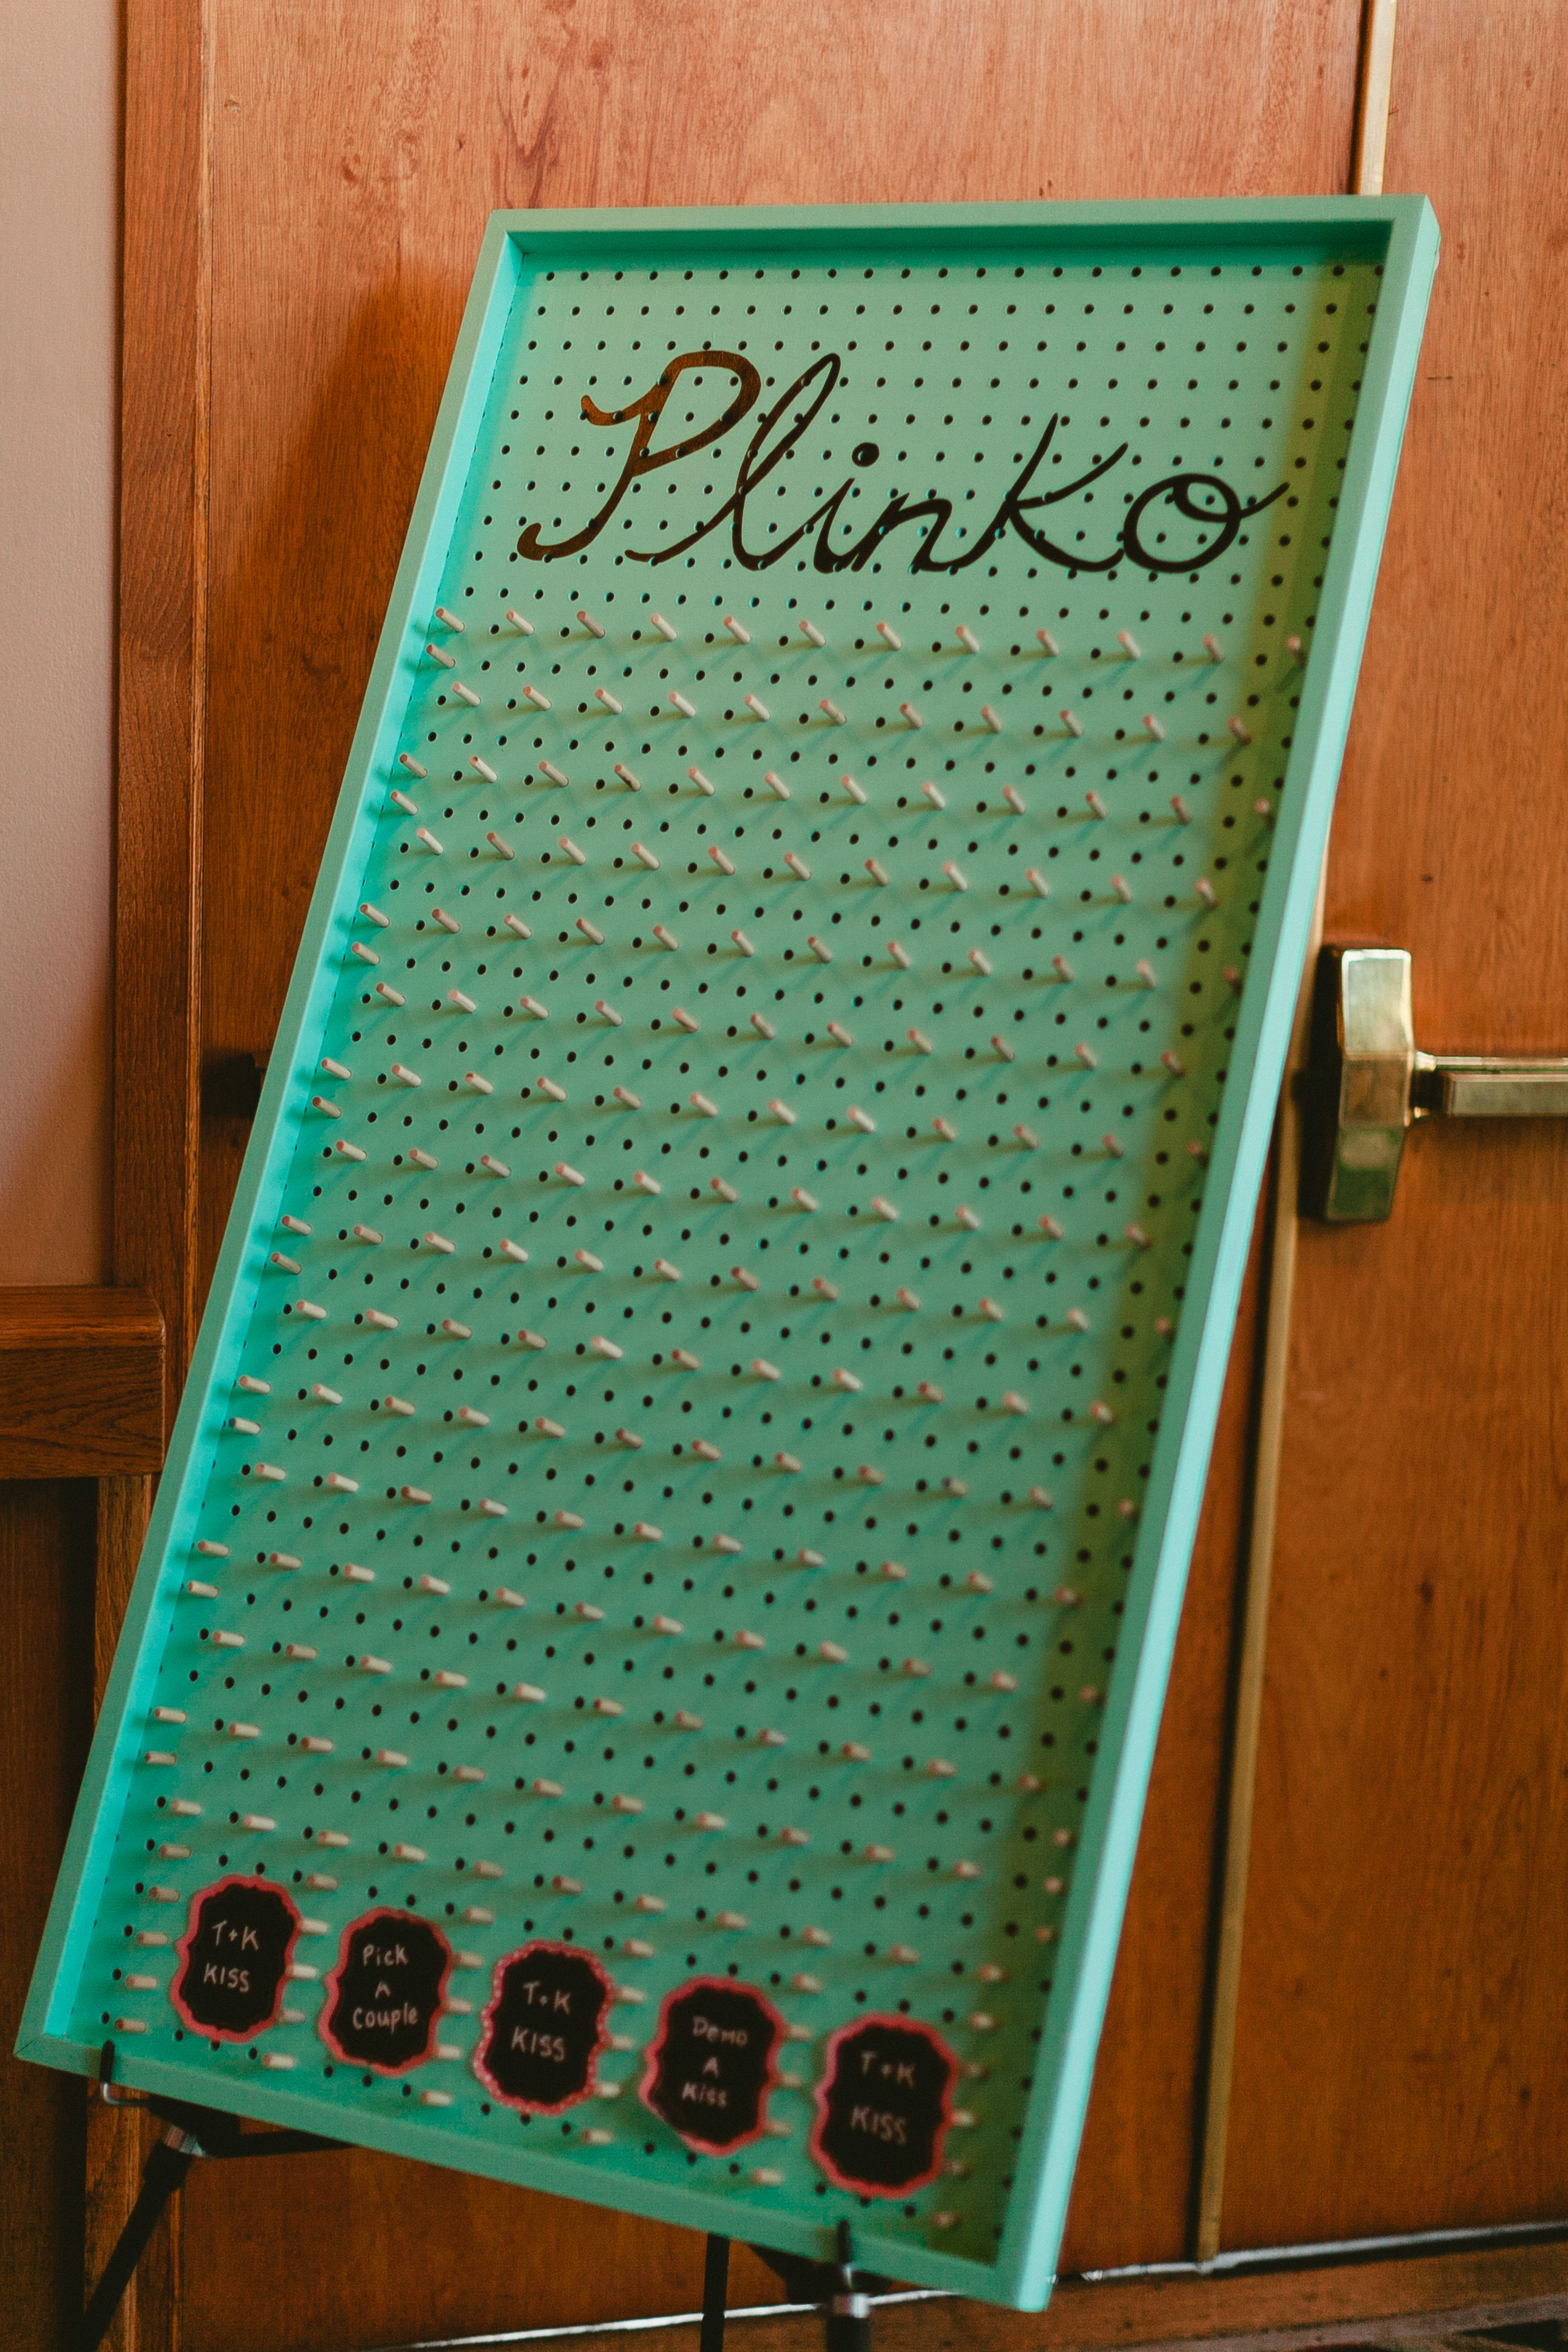 Wedding Kissing Game Plinko Photo By M Him With Images